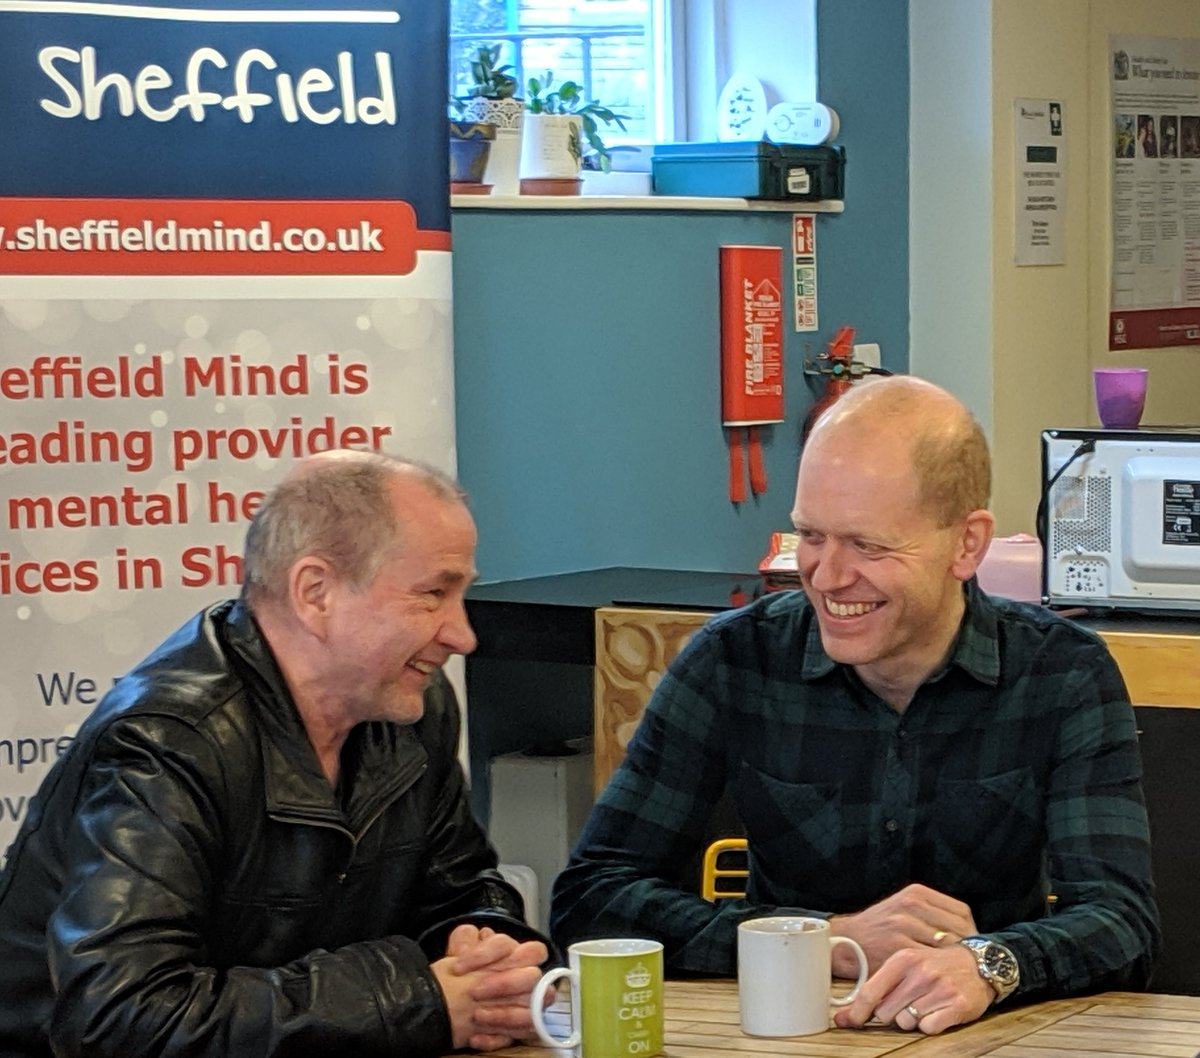 Men of Sheffield. History is being made. The first ever @SheffieldMind Mankind Zoom is this Thursday, 6th August from 5 – 6.45pm! For details of how to join us for good conversation & peer support, email Haeran.young@sheffieldmind.co.ukpic.twitter.com/KW4RSEBjWR